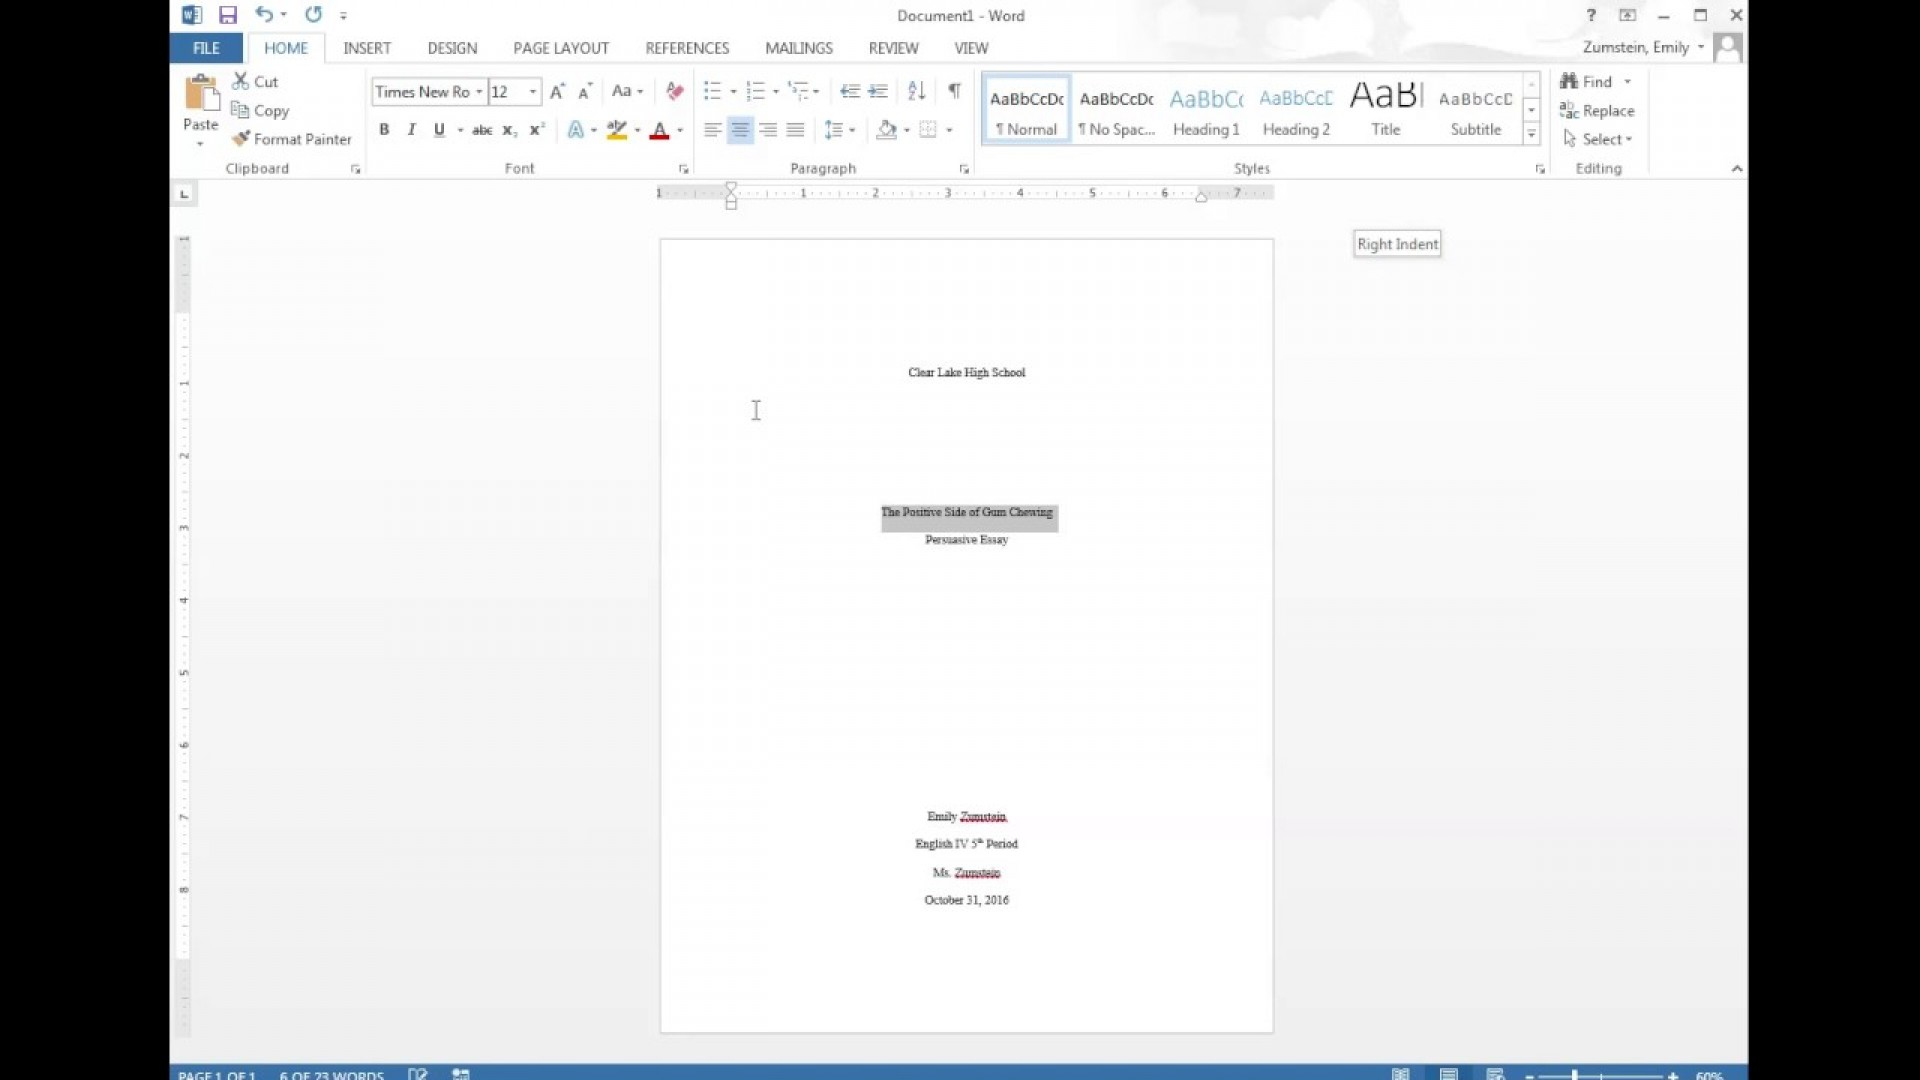 008 Mla Essay Cover Page Maxresdefault Unique Format Front Paper First 1920